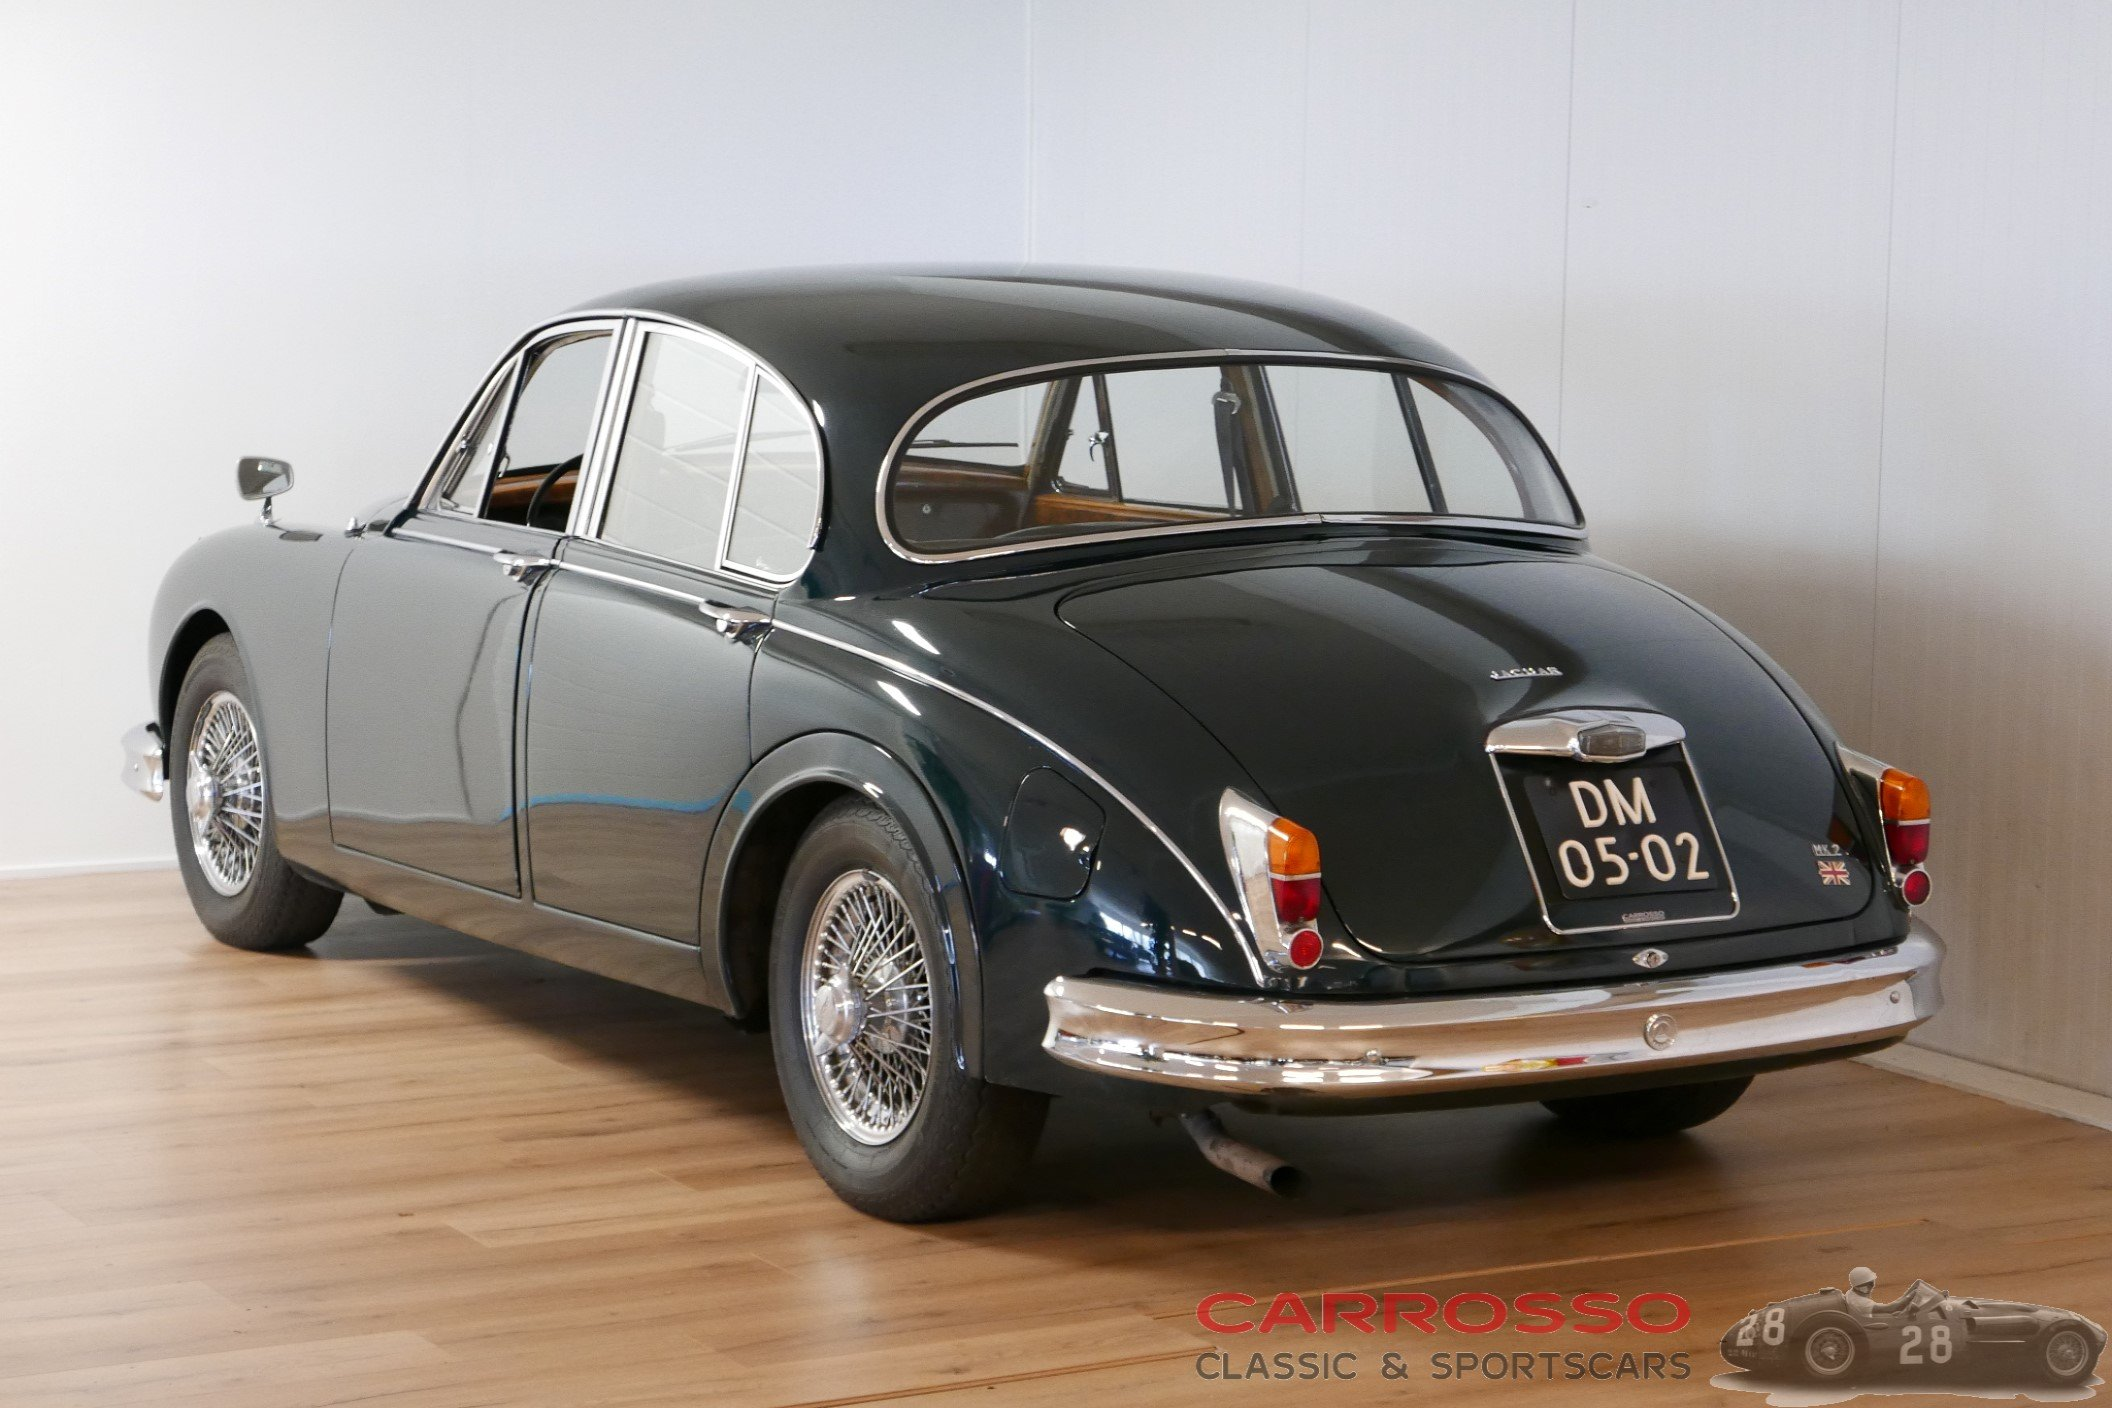 34Jaguar Mark 2 2.4 (76)